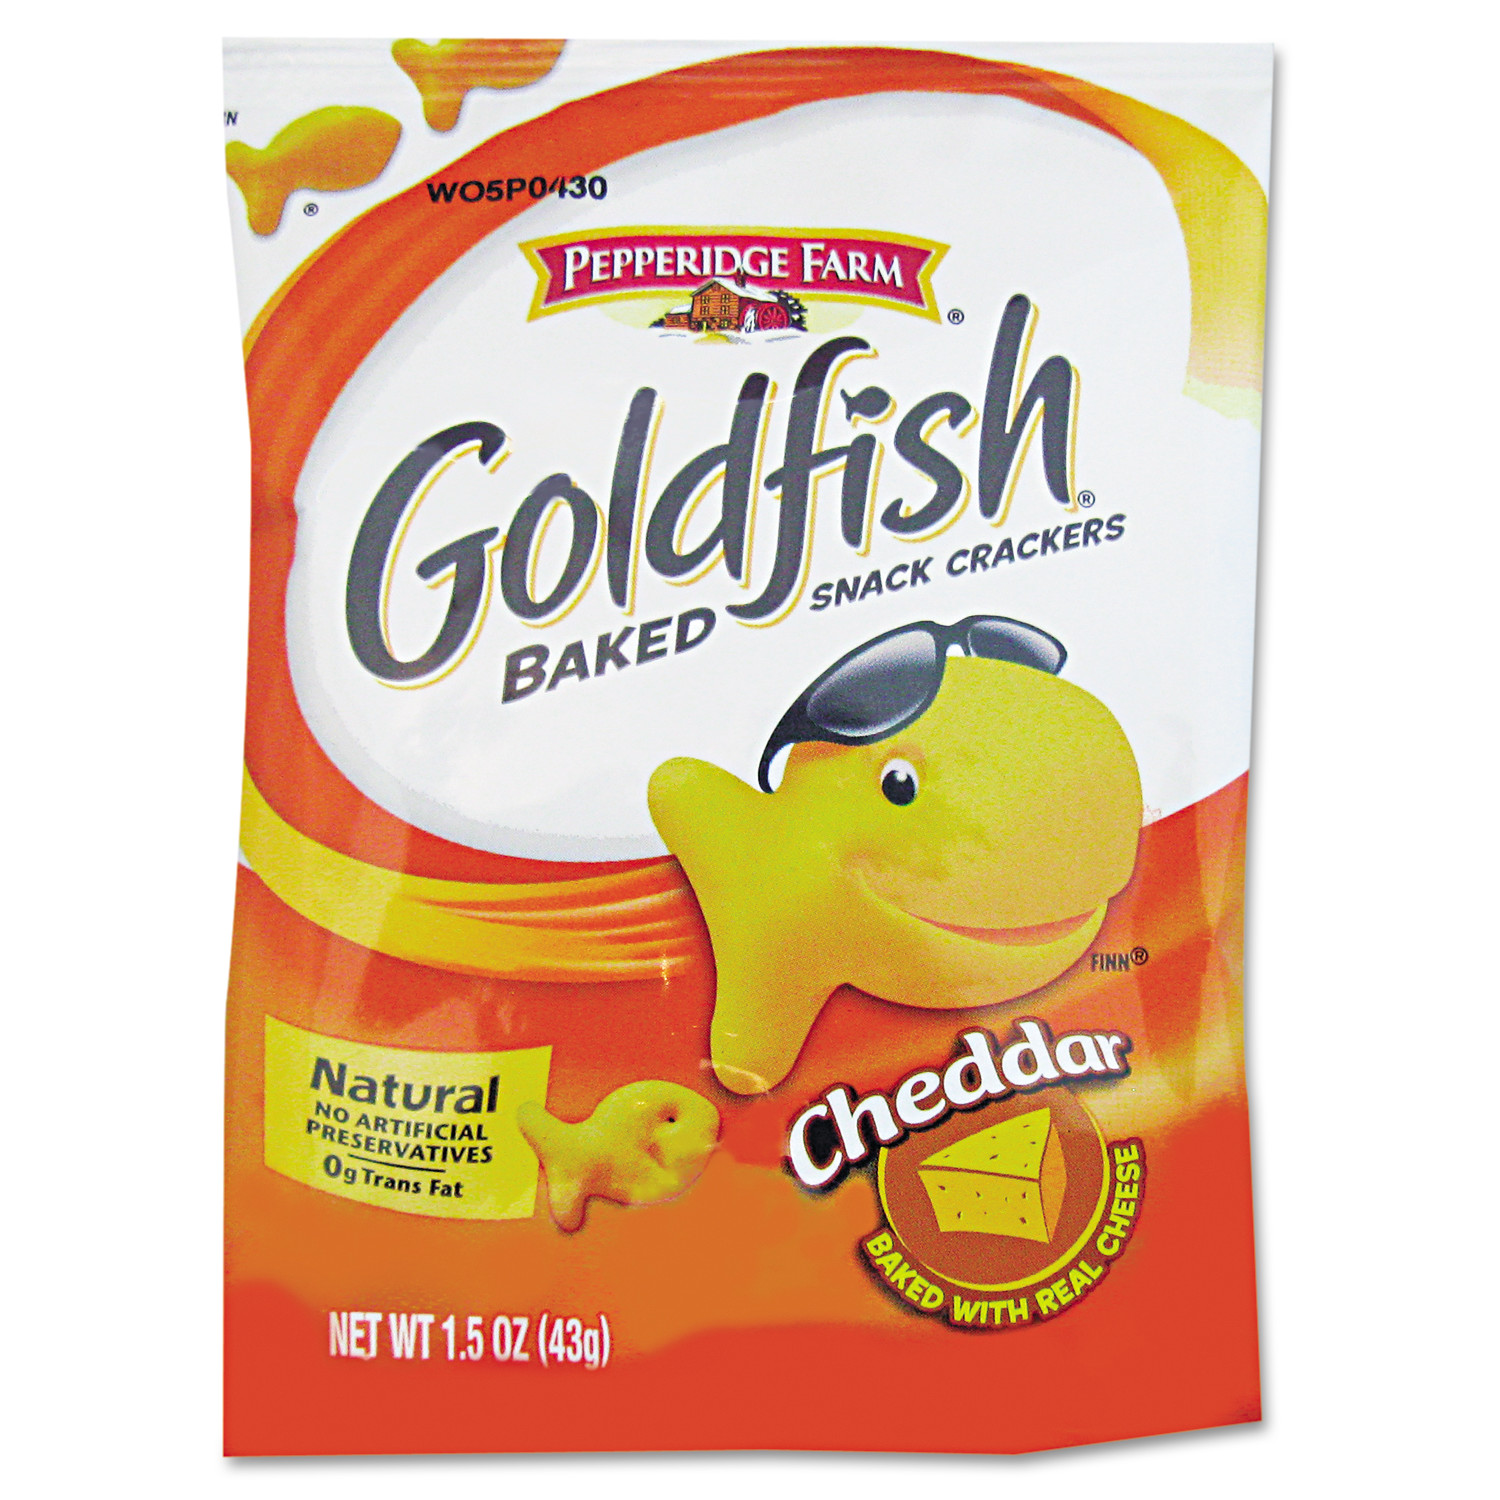 Goldfish Baked Snack Crackers, 1.5 oz, 72 Count